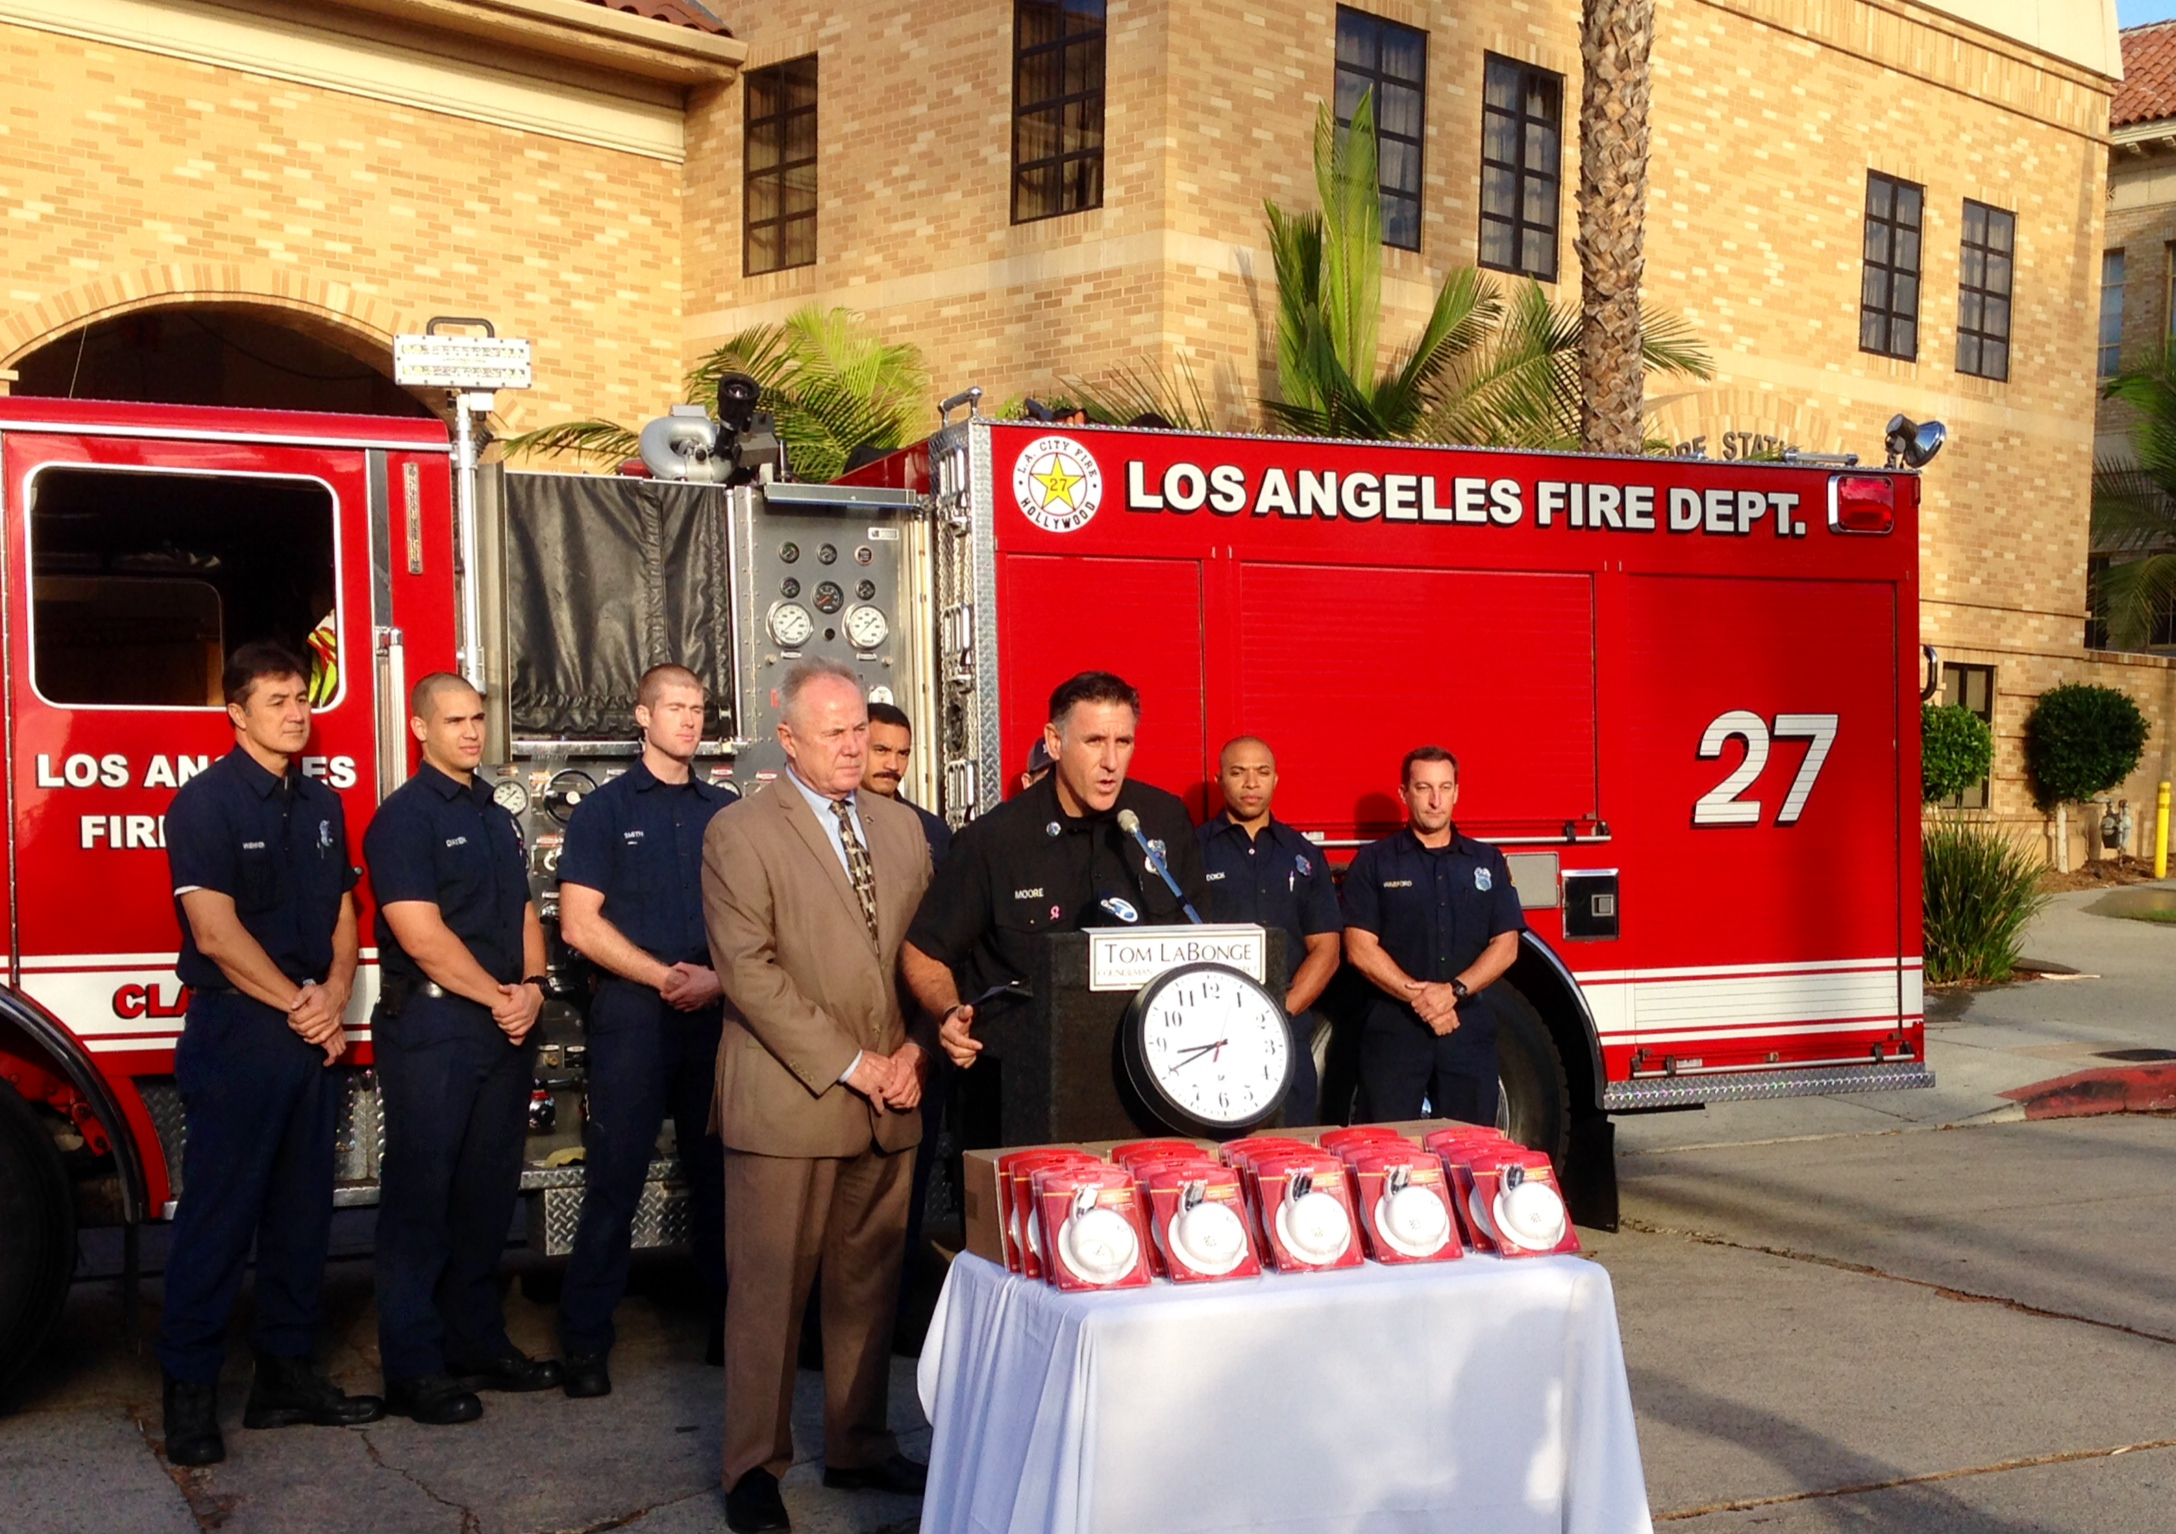 LAFD Captain Moore speaking at lectern. Firefighters and a fire engine in the background and a table of smoke alarms in the foreground.